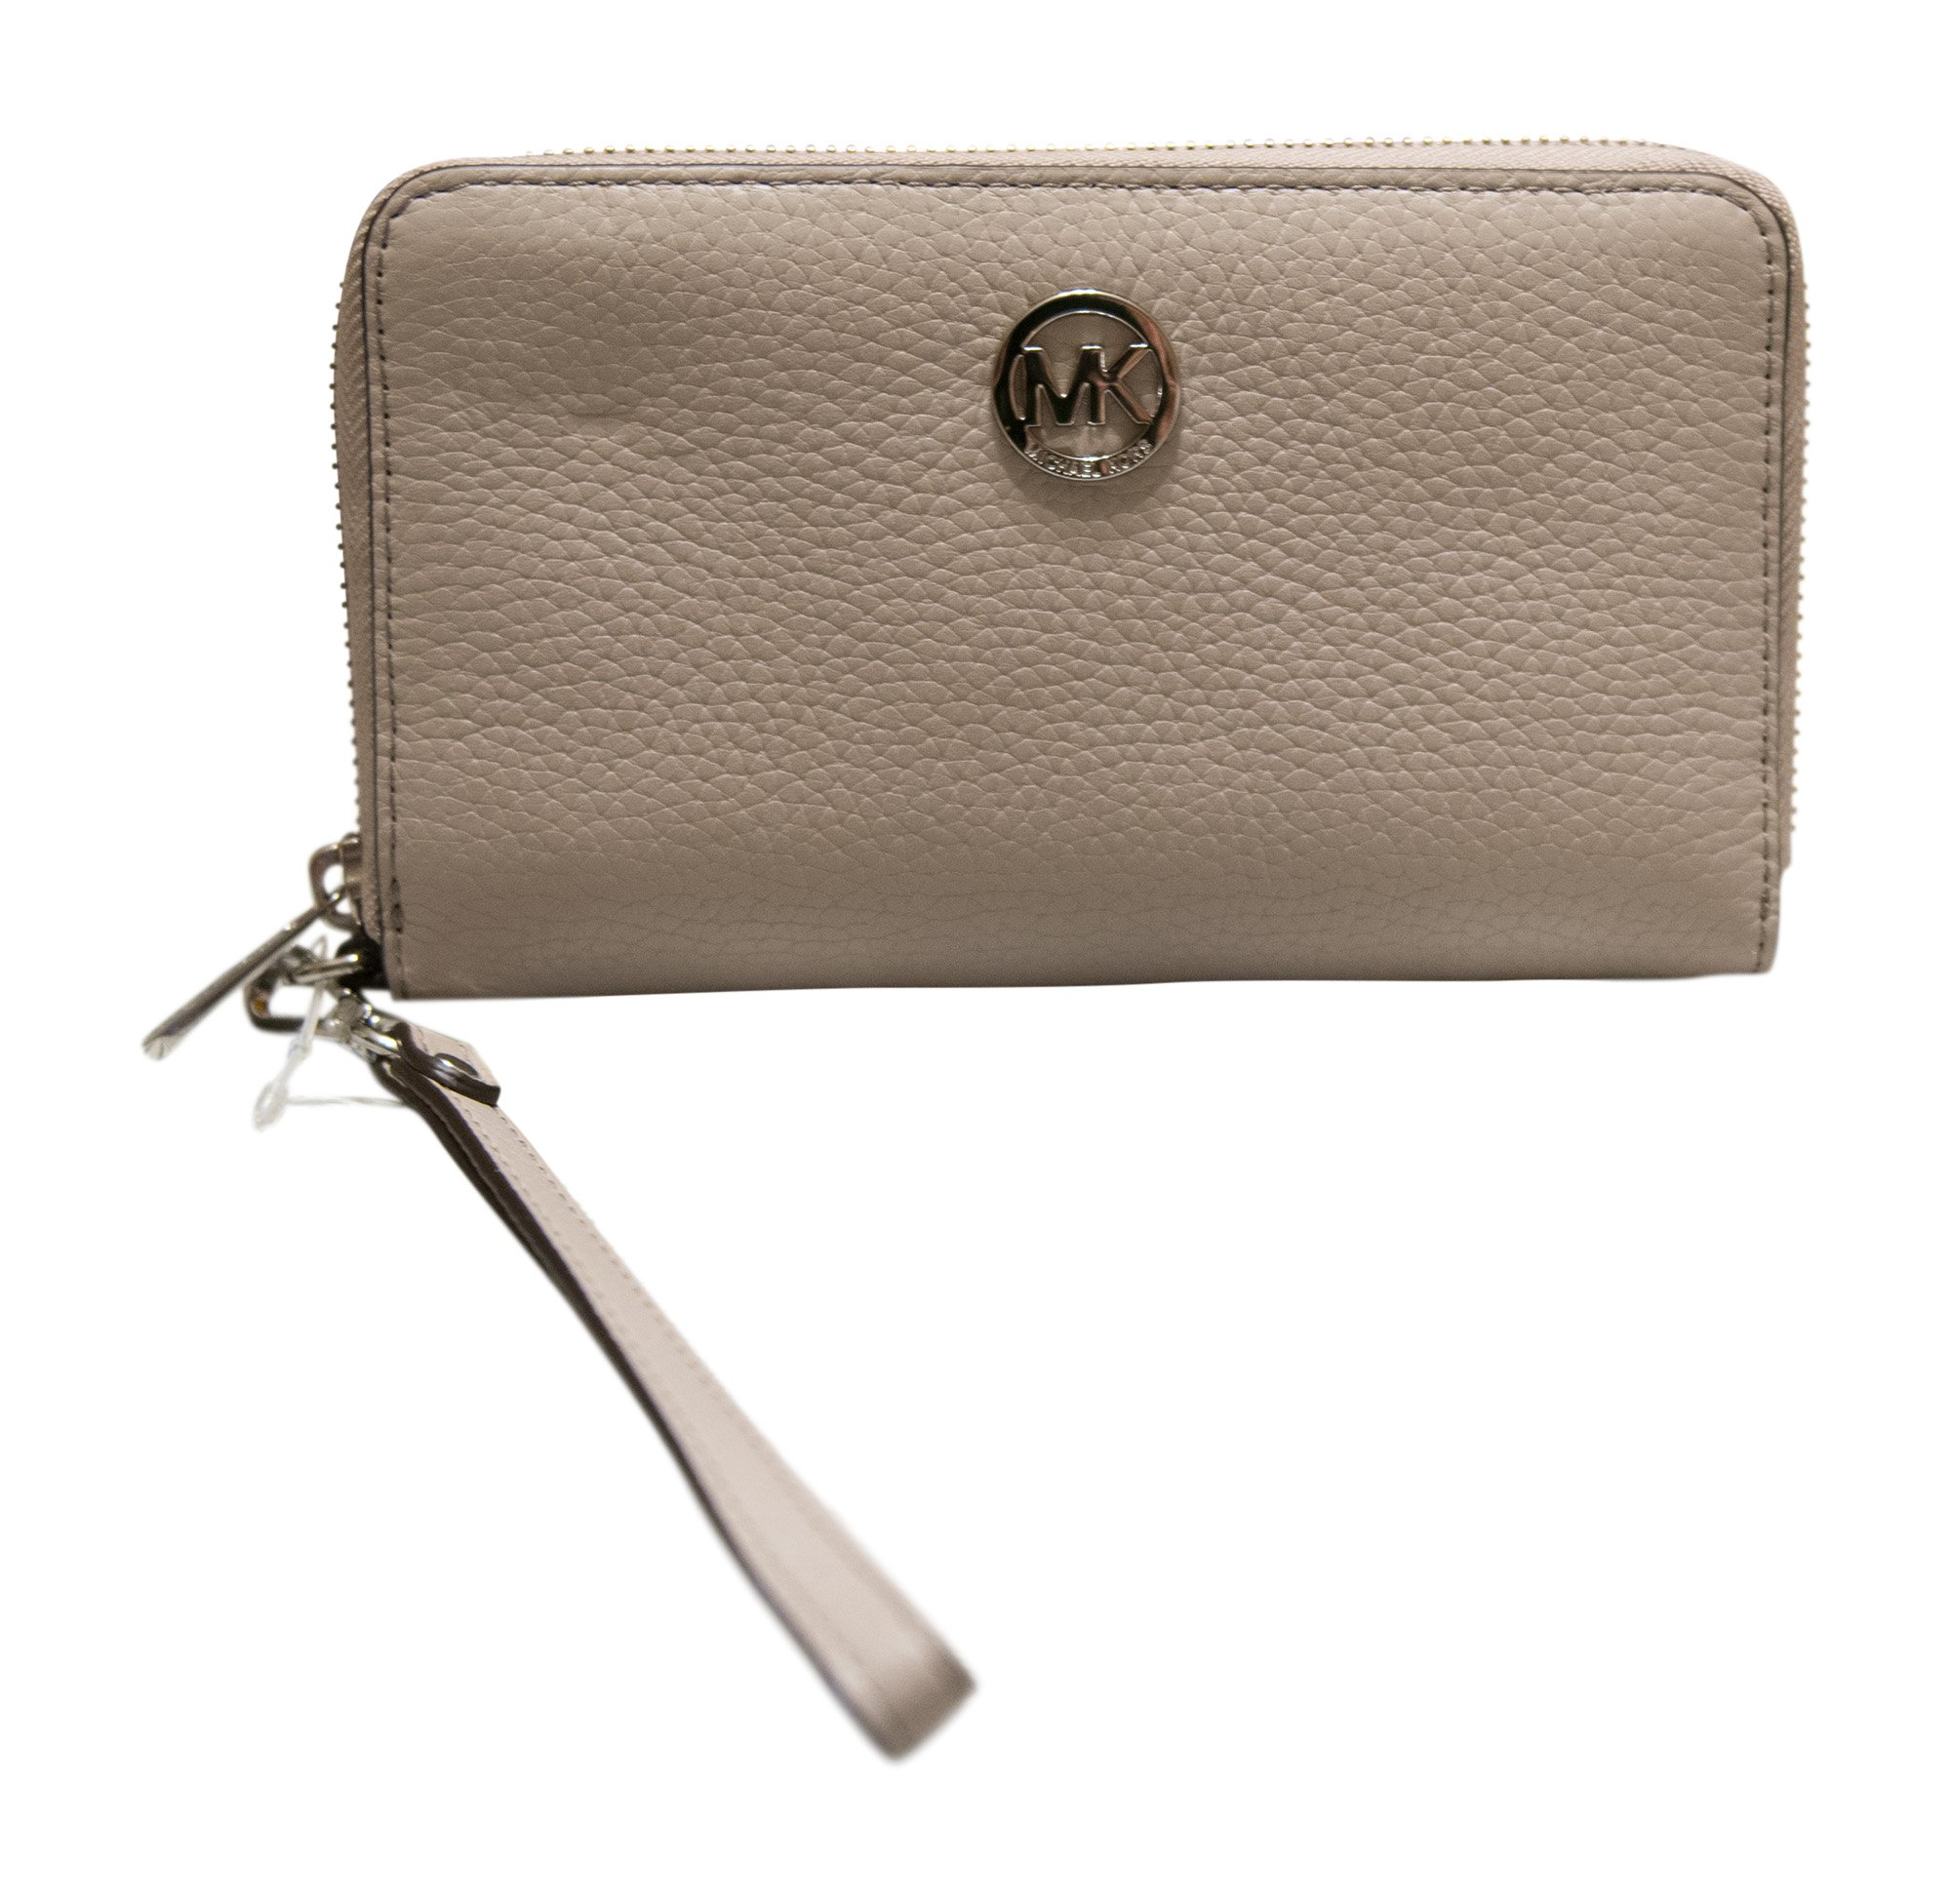 Michael Kors FultonLarge Flat Multifunction Leather Phone Case Wristlet, Cement by Michael Kors